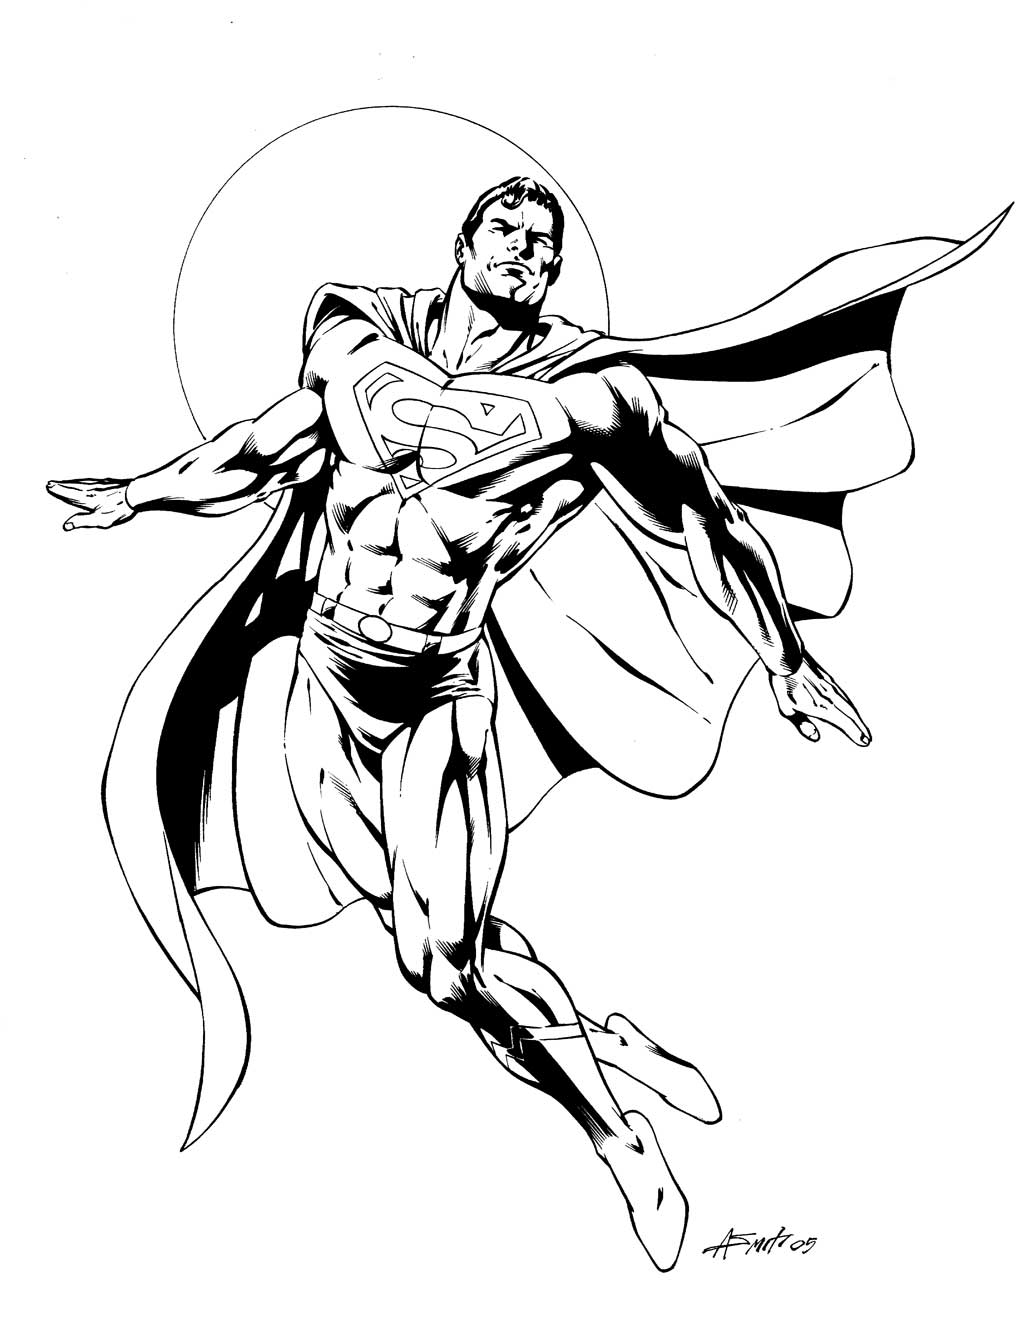 superman dessins à colorier gratuit à imprimer dessins à colorier cool